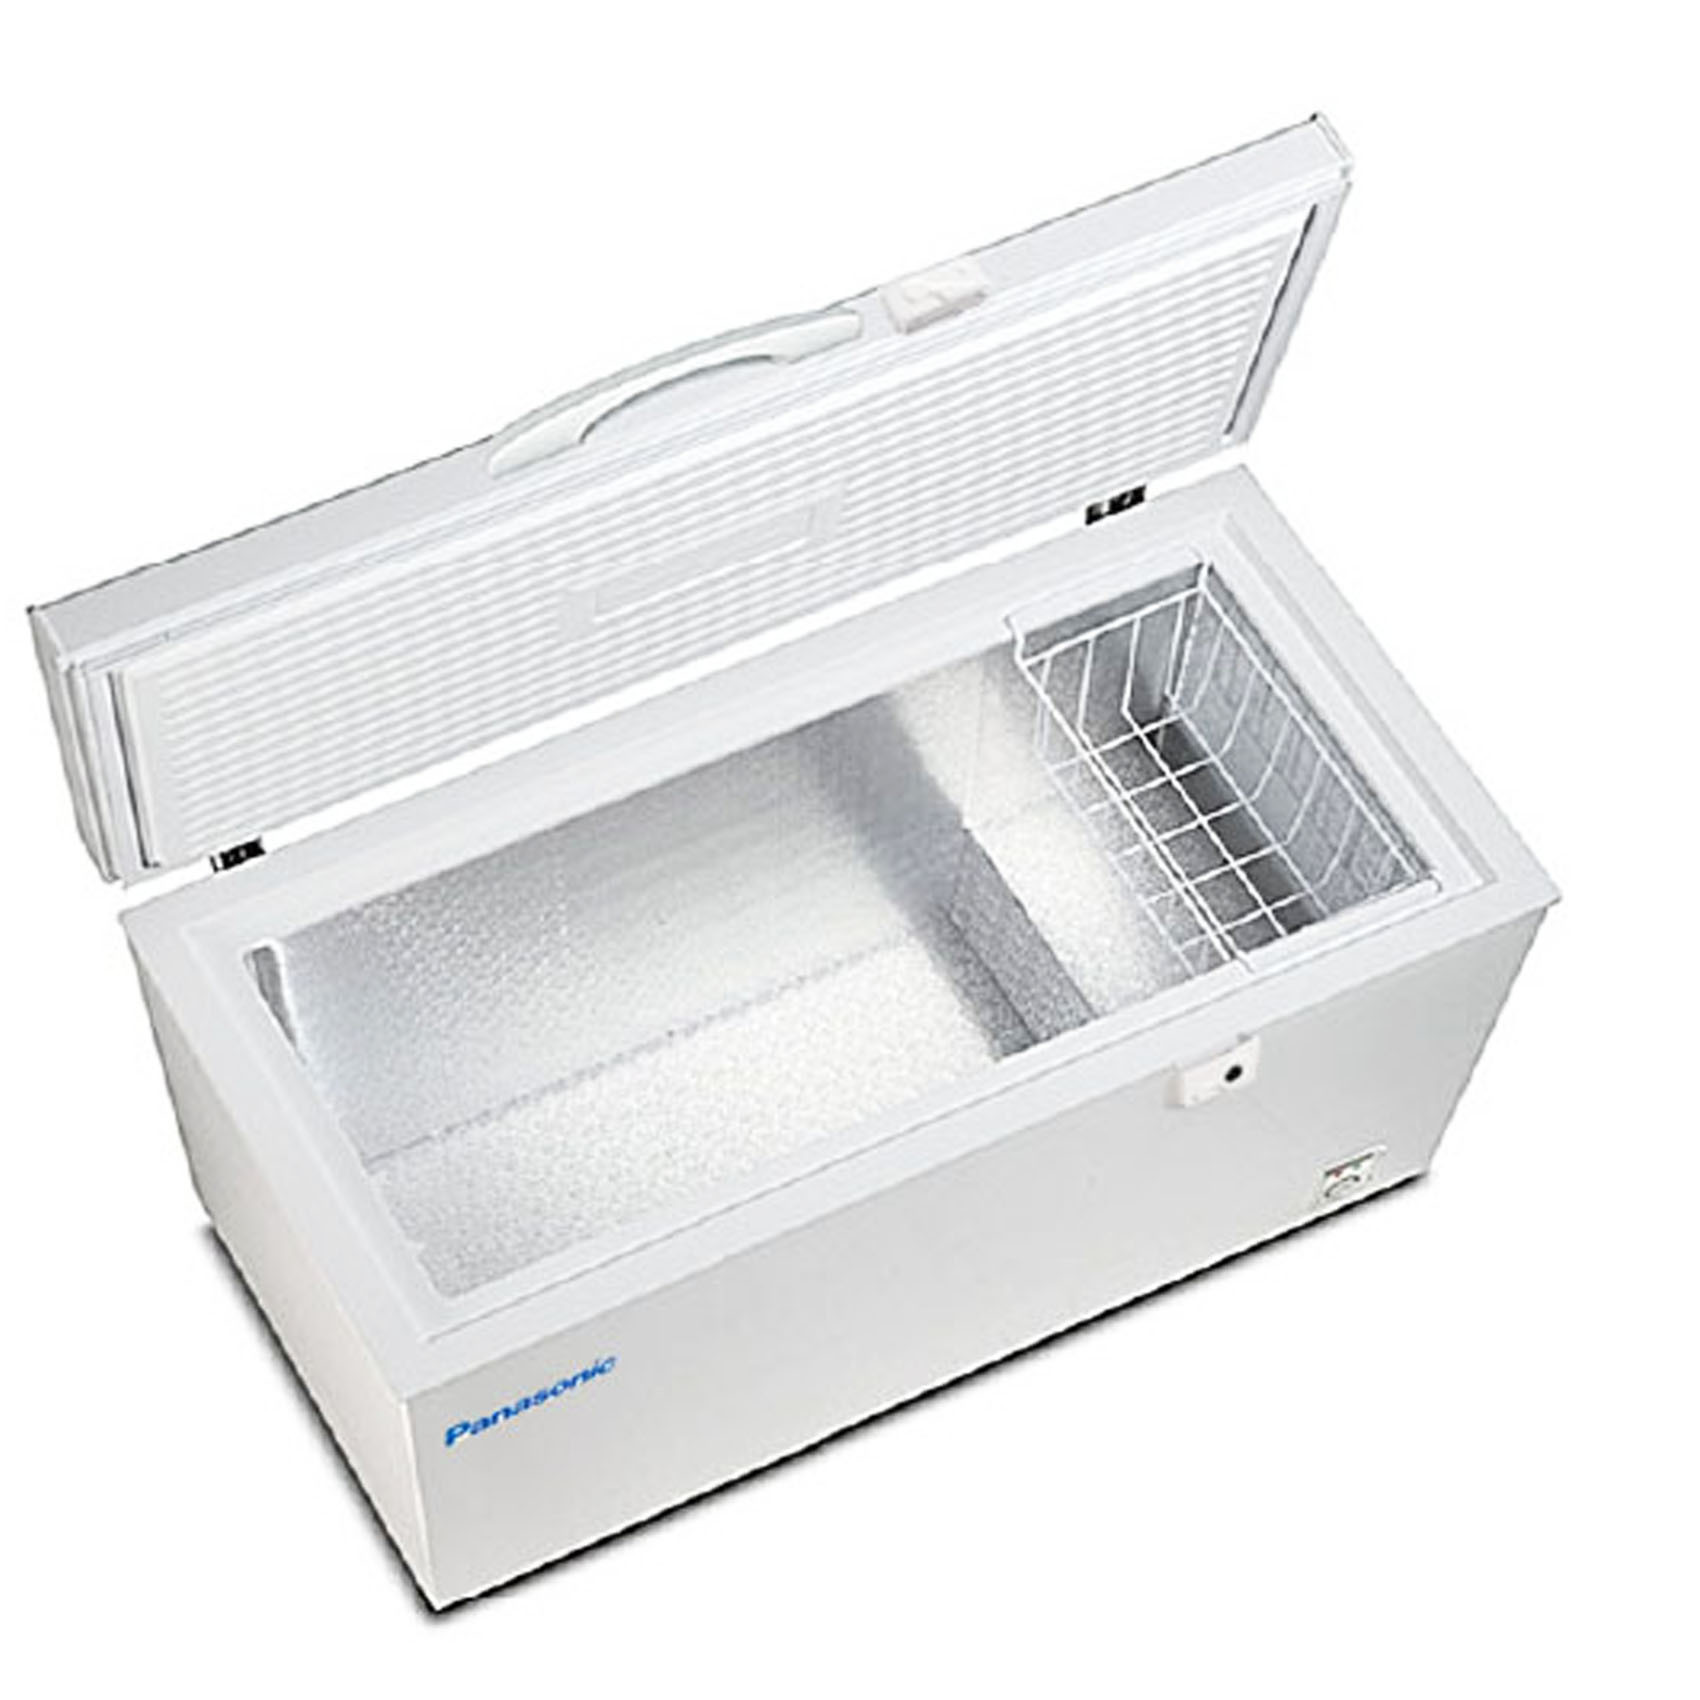 PANASONIC CHEST FREEZER SCRCH300